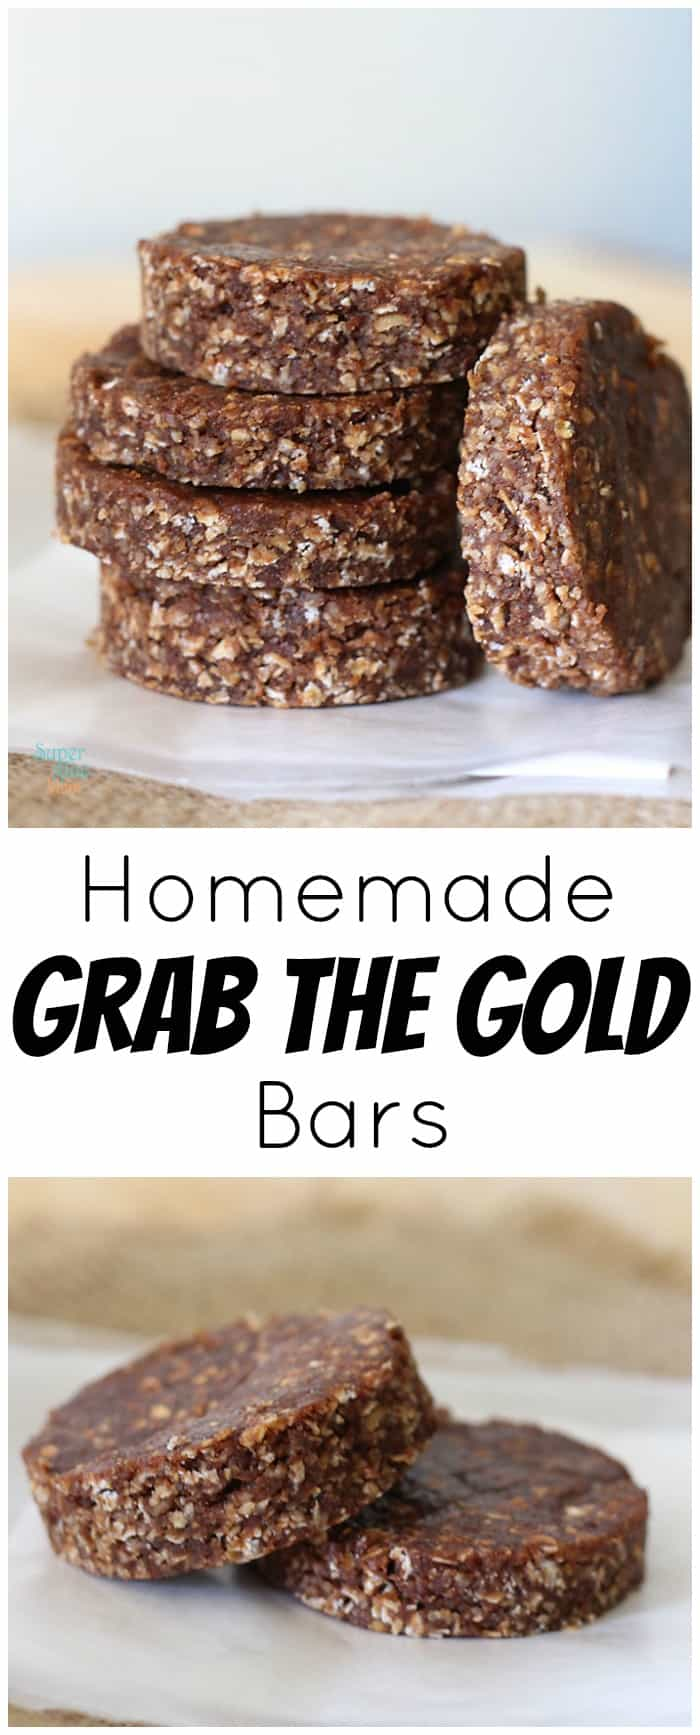 Easy to make, cheaper, and delicious homemade Grab the Gold Bar recipe.